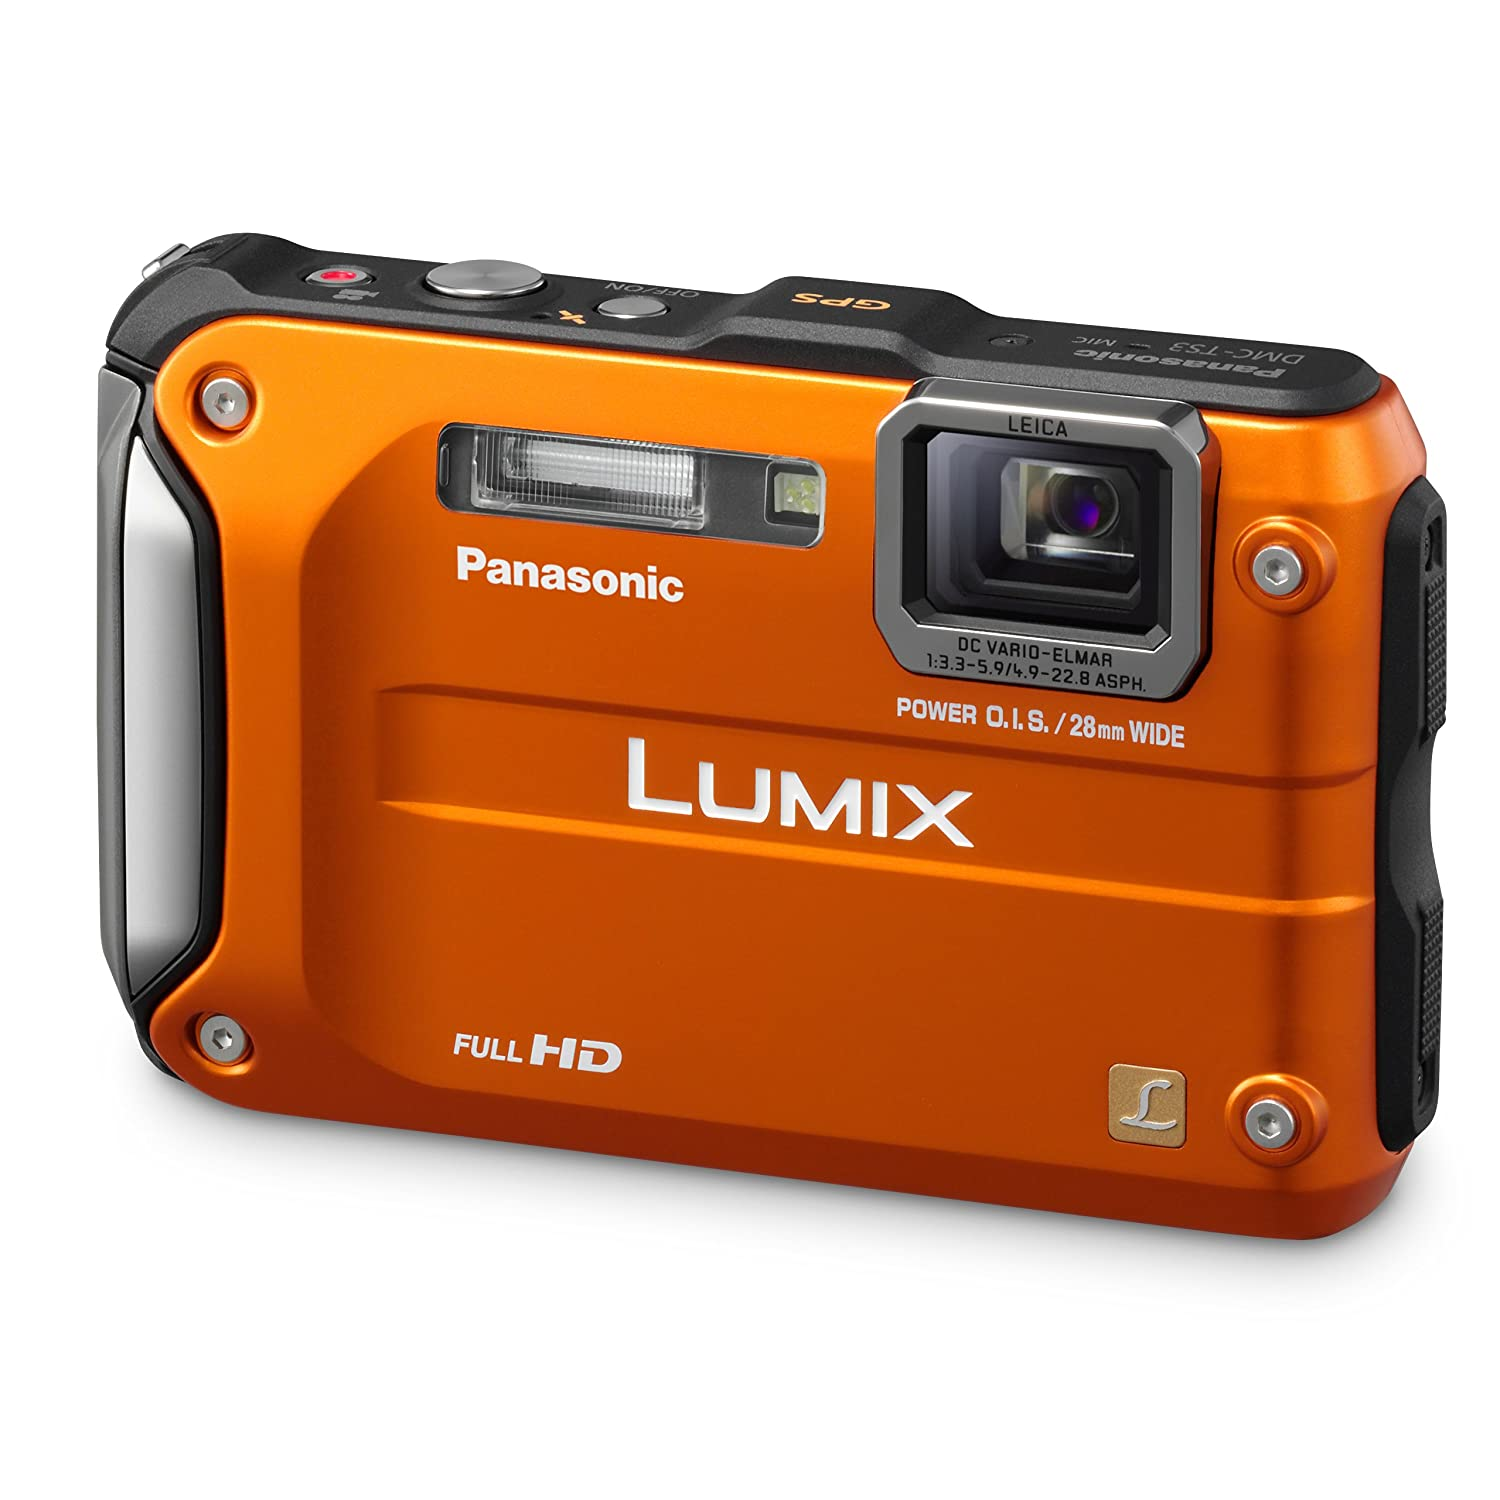 lumix camera hi tech - photo #34